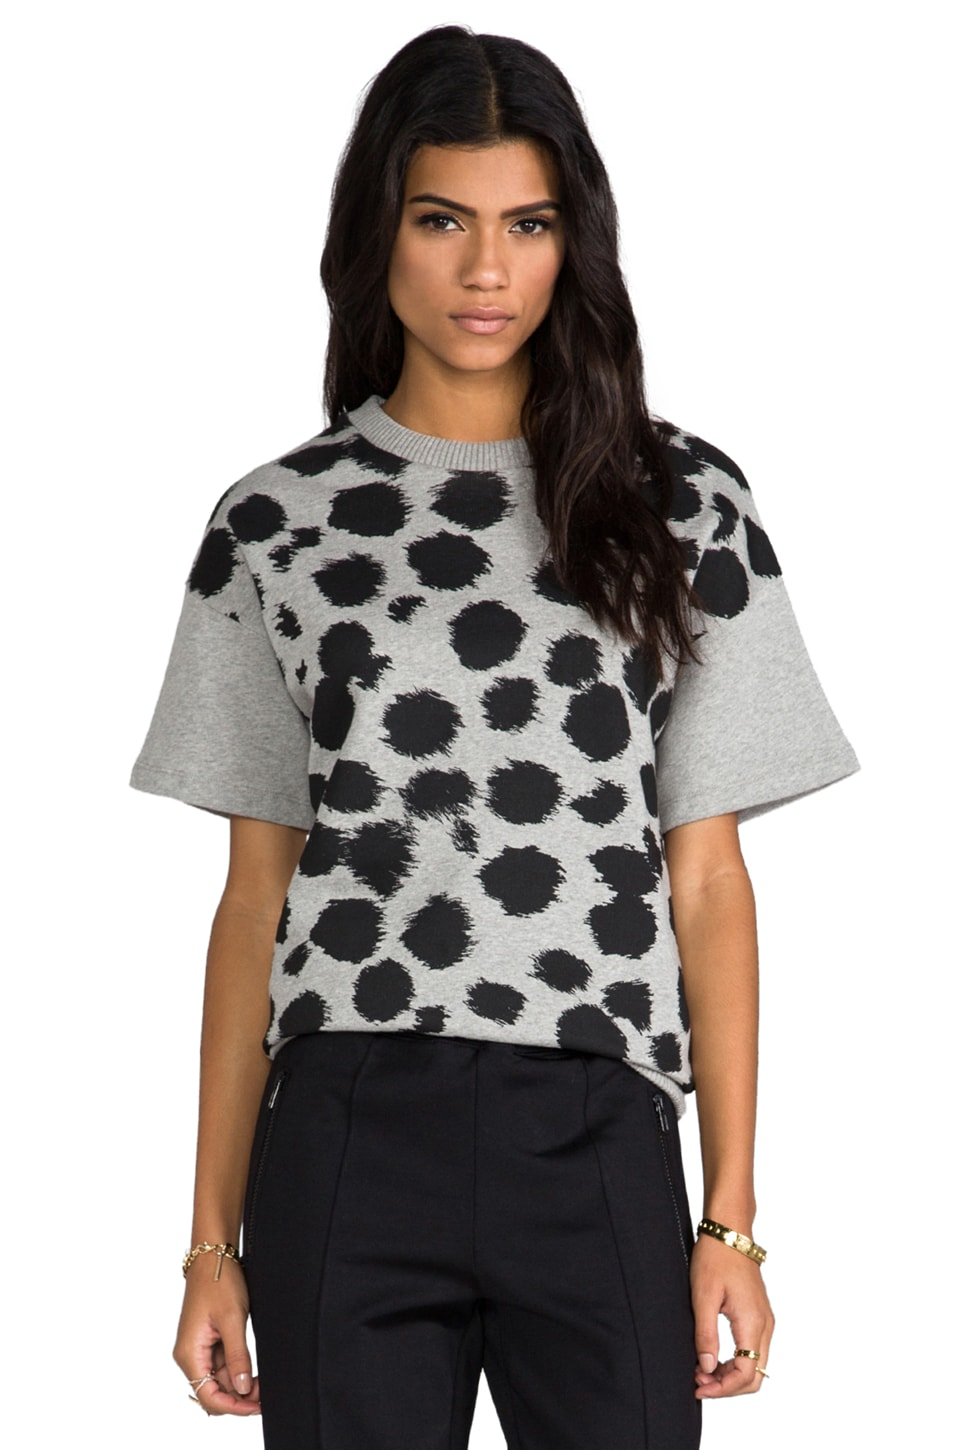 etre cecile All Over Cheetah Sweatshirt in Grey/Black